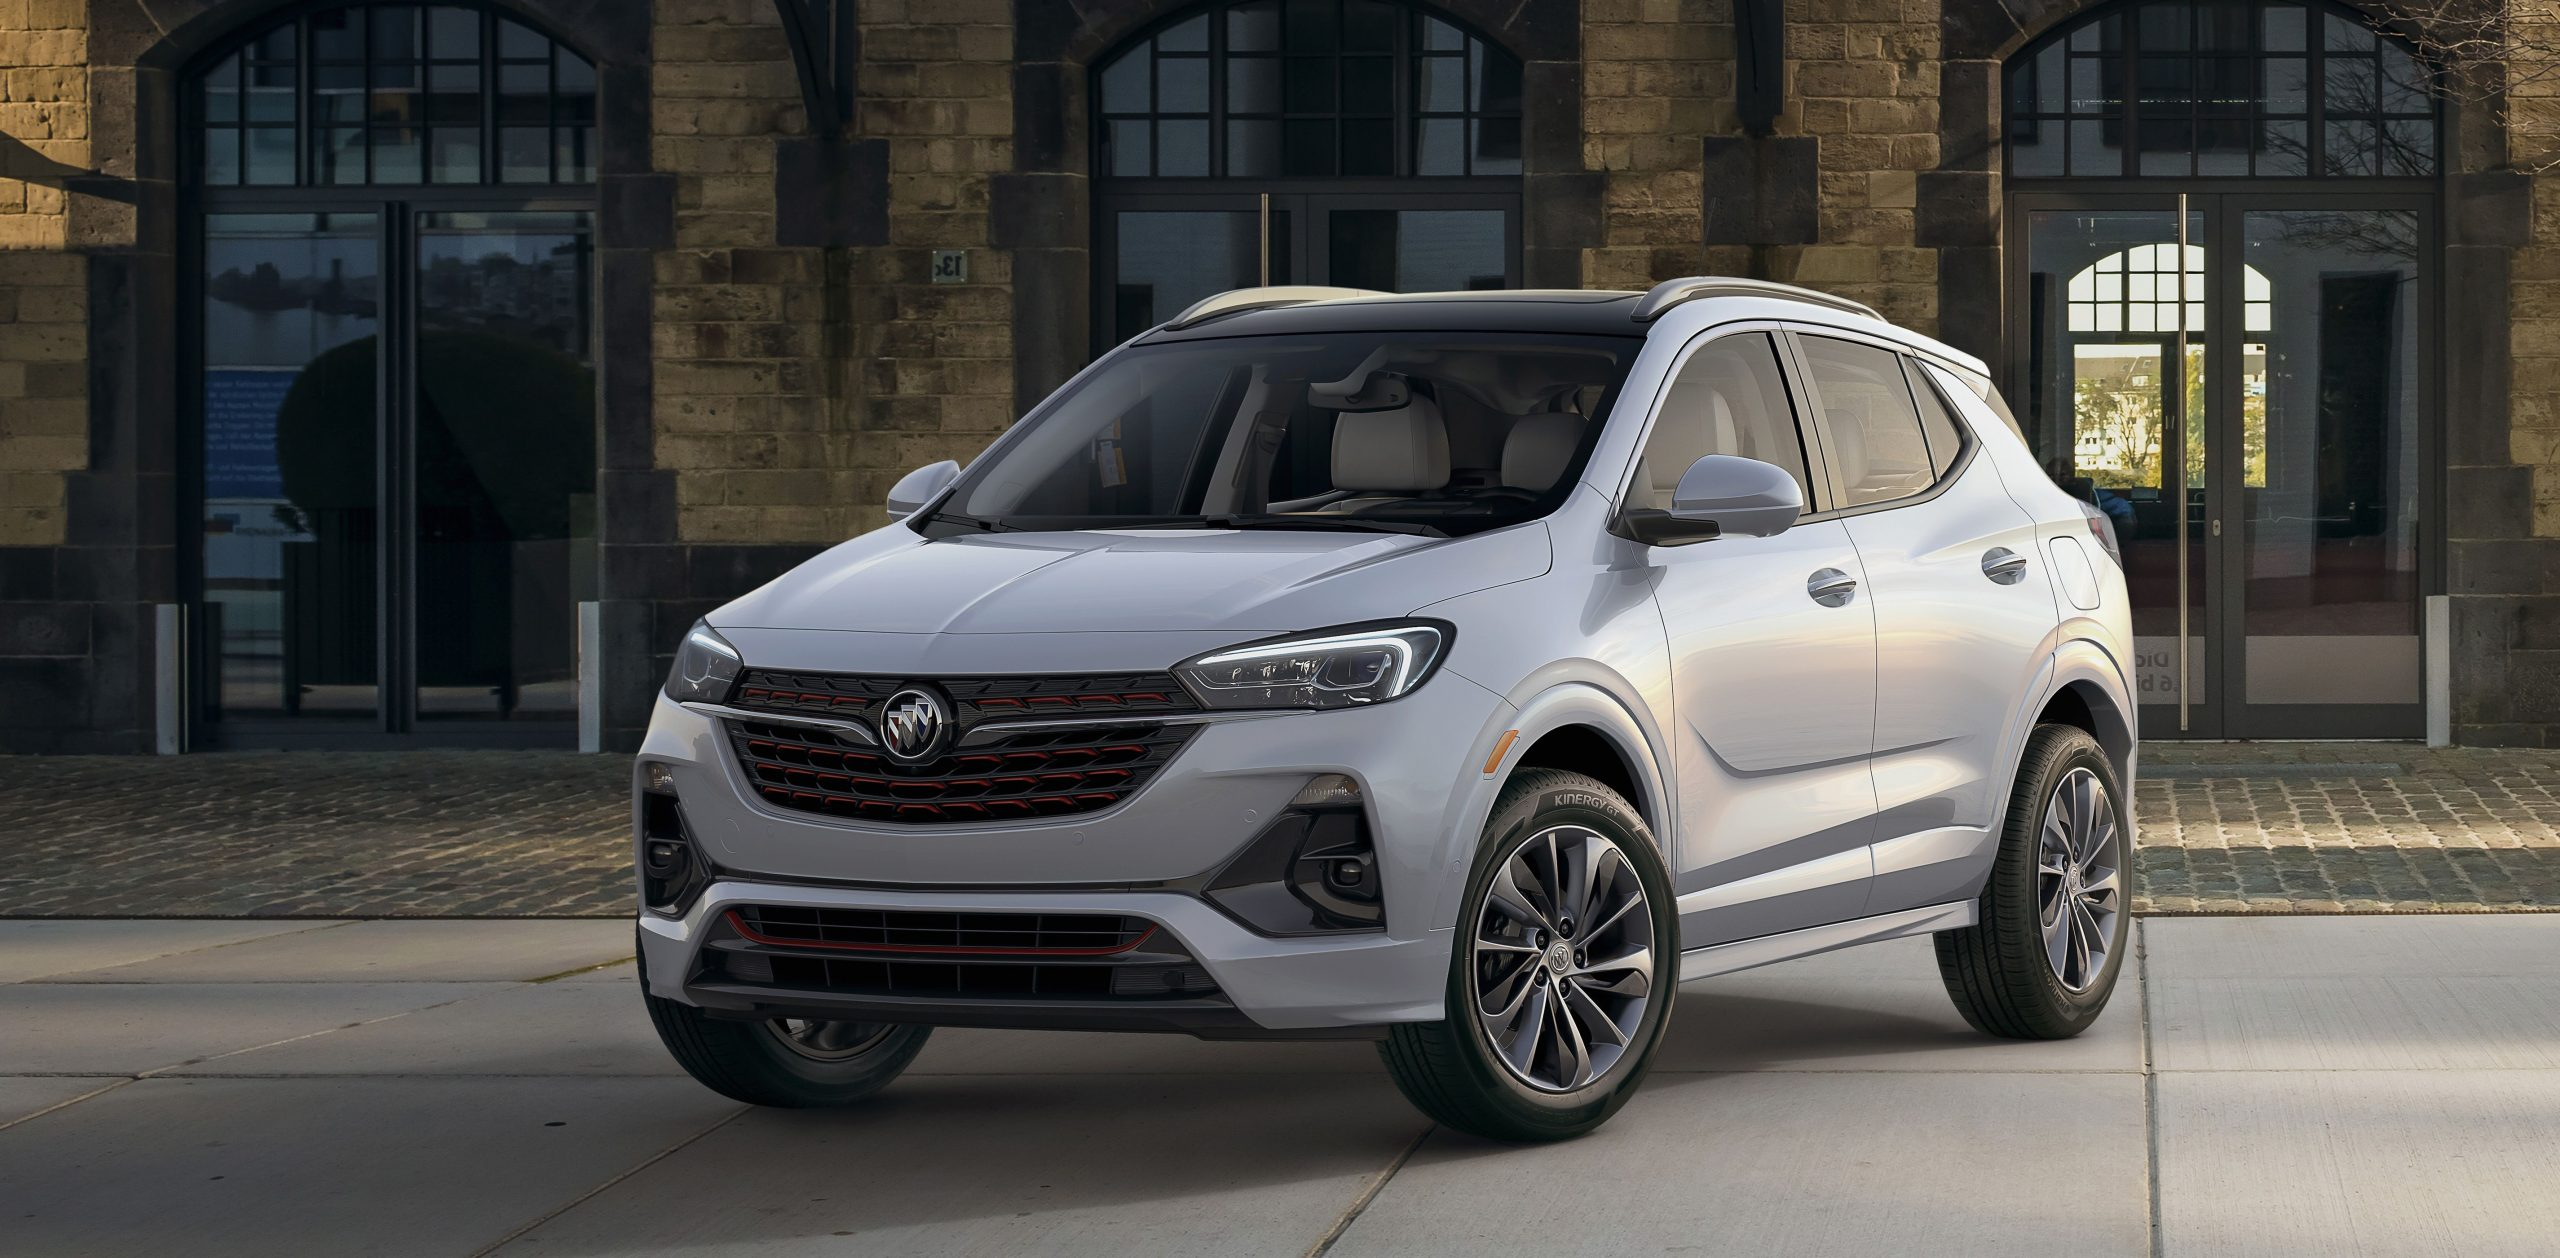 2020 Buick Encore Gx: What We Know So Far 2021 Buick Encore Gx Lease Price, Mpg, Msrp